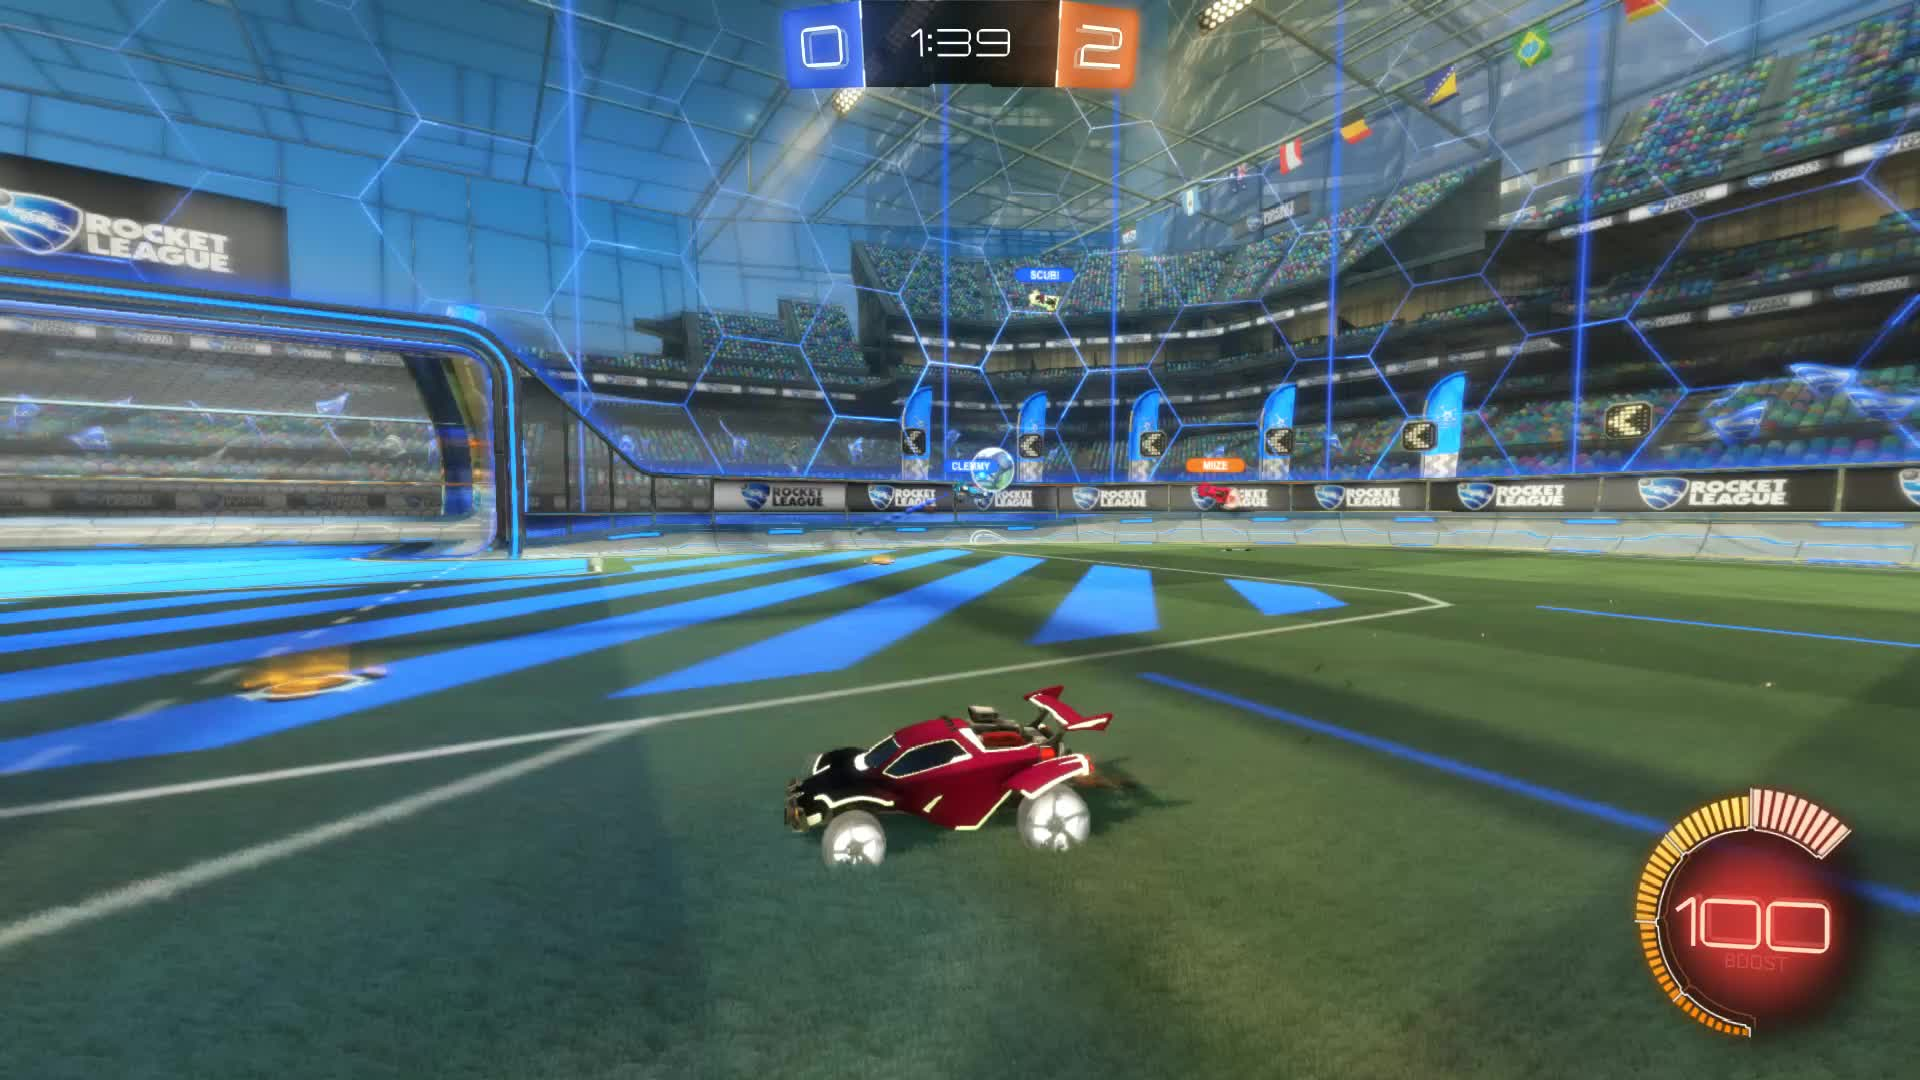 Assist, Gif Your Game, GifYourGame, Rocket League, RocketLeague, Trip, Assist 2: Trip GIFs